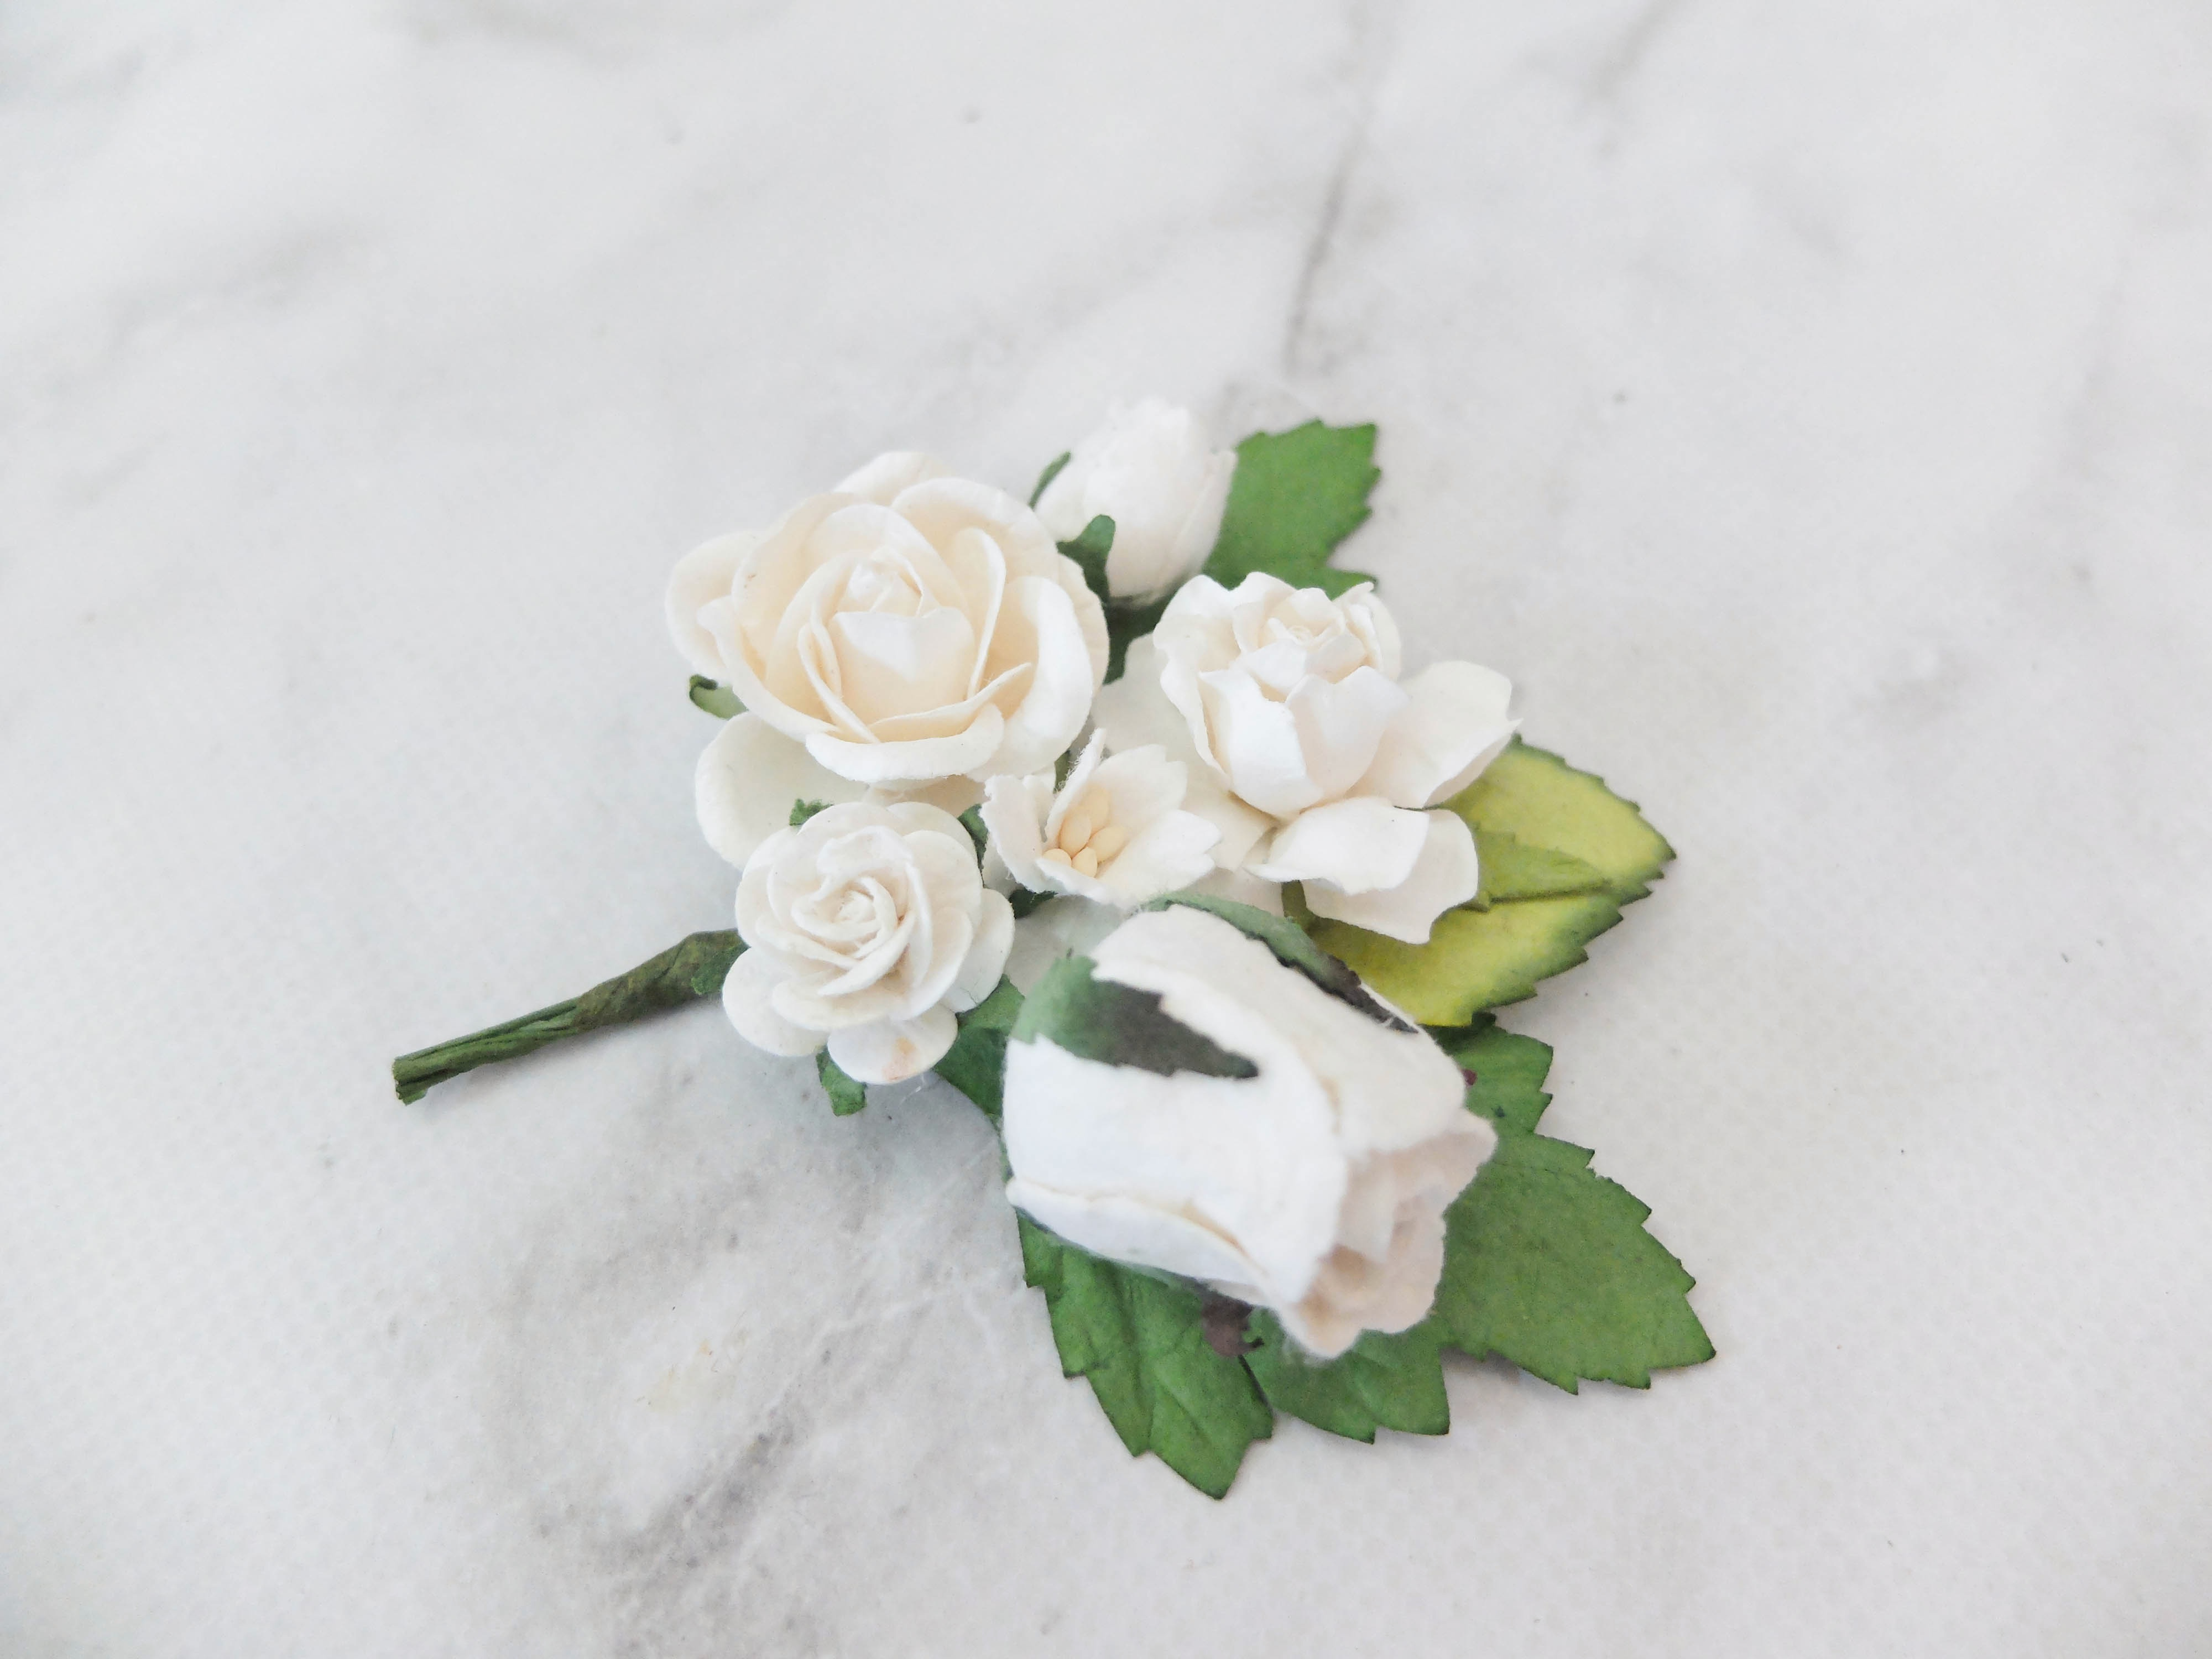 Wedding flower boutonnire buttonhole white flower corsage wedding flower boutonnire buttonhole white flower corsage mightylinksfo Image collections